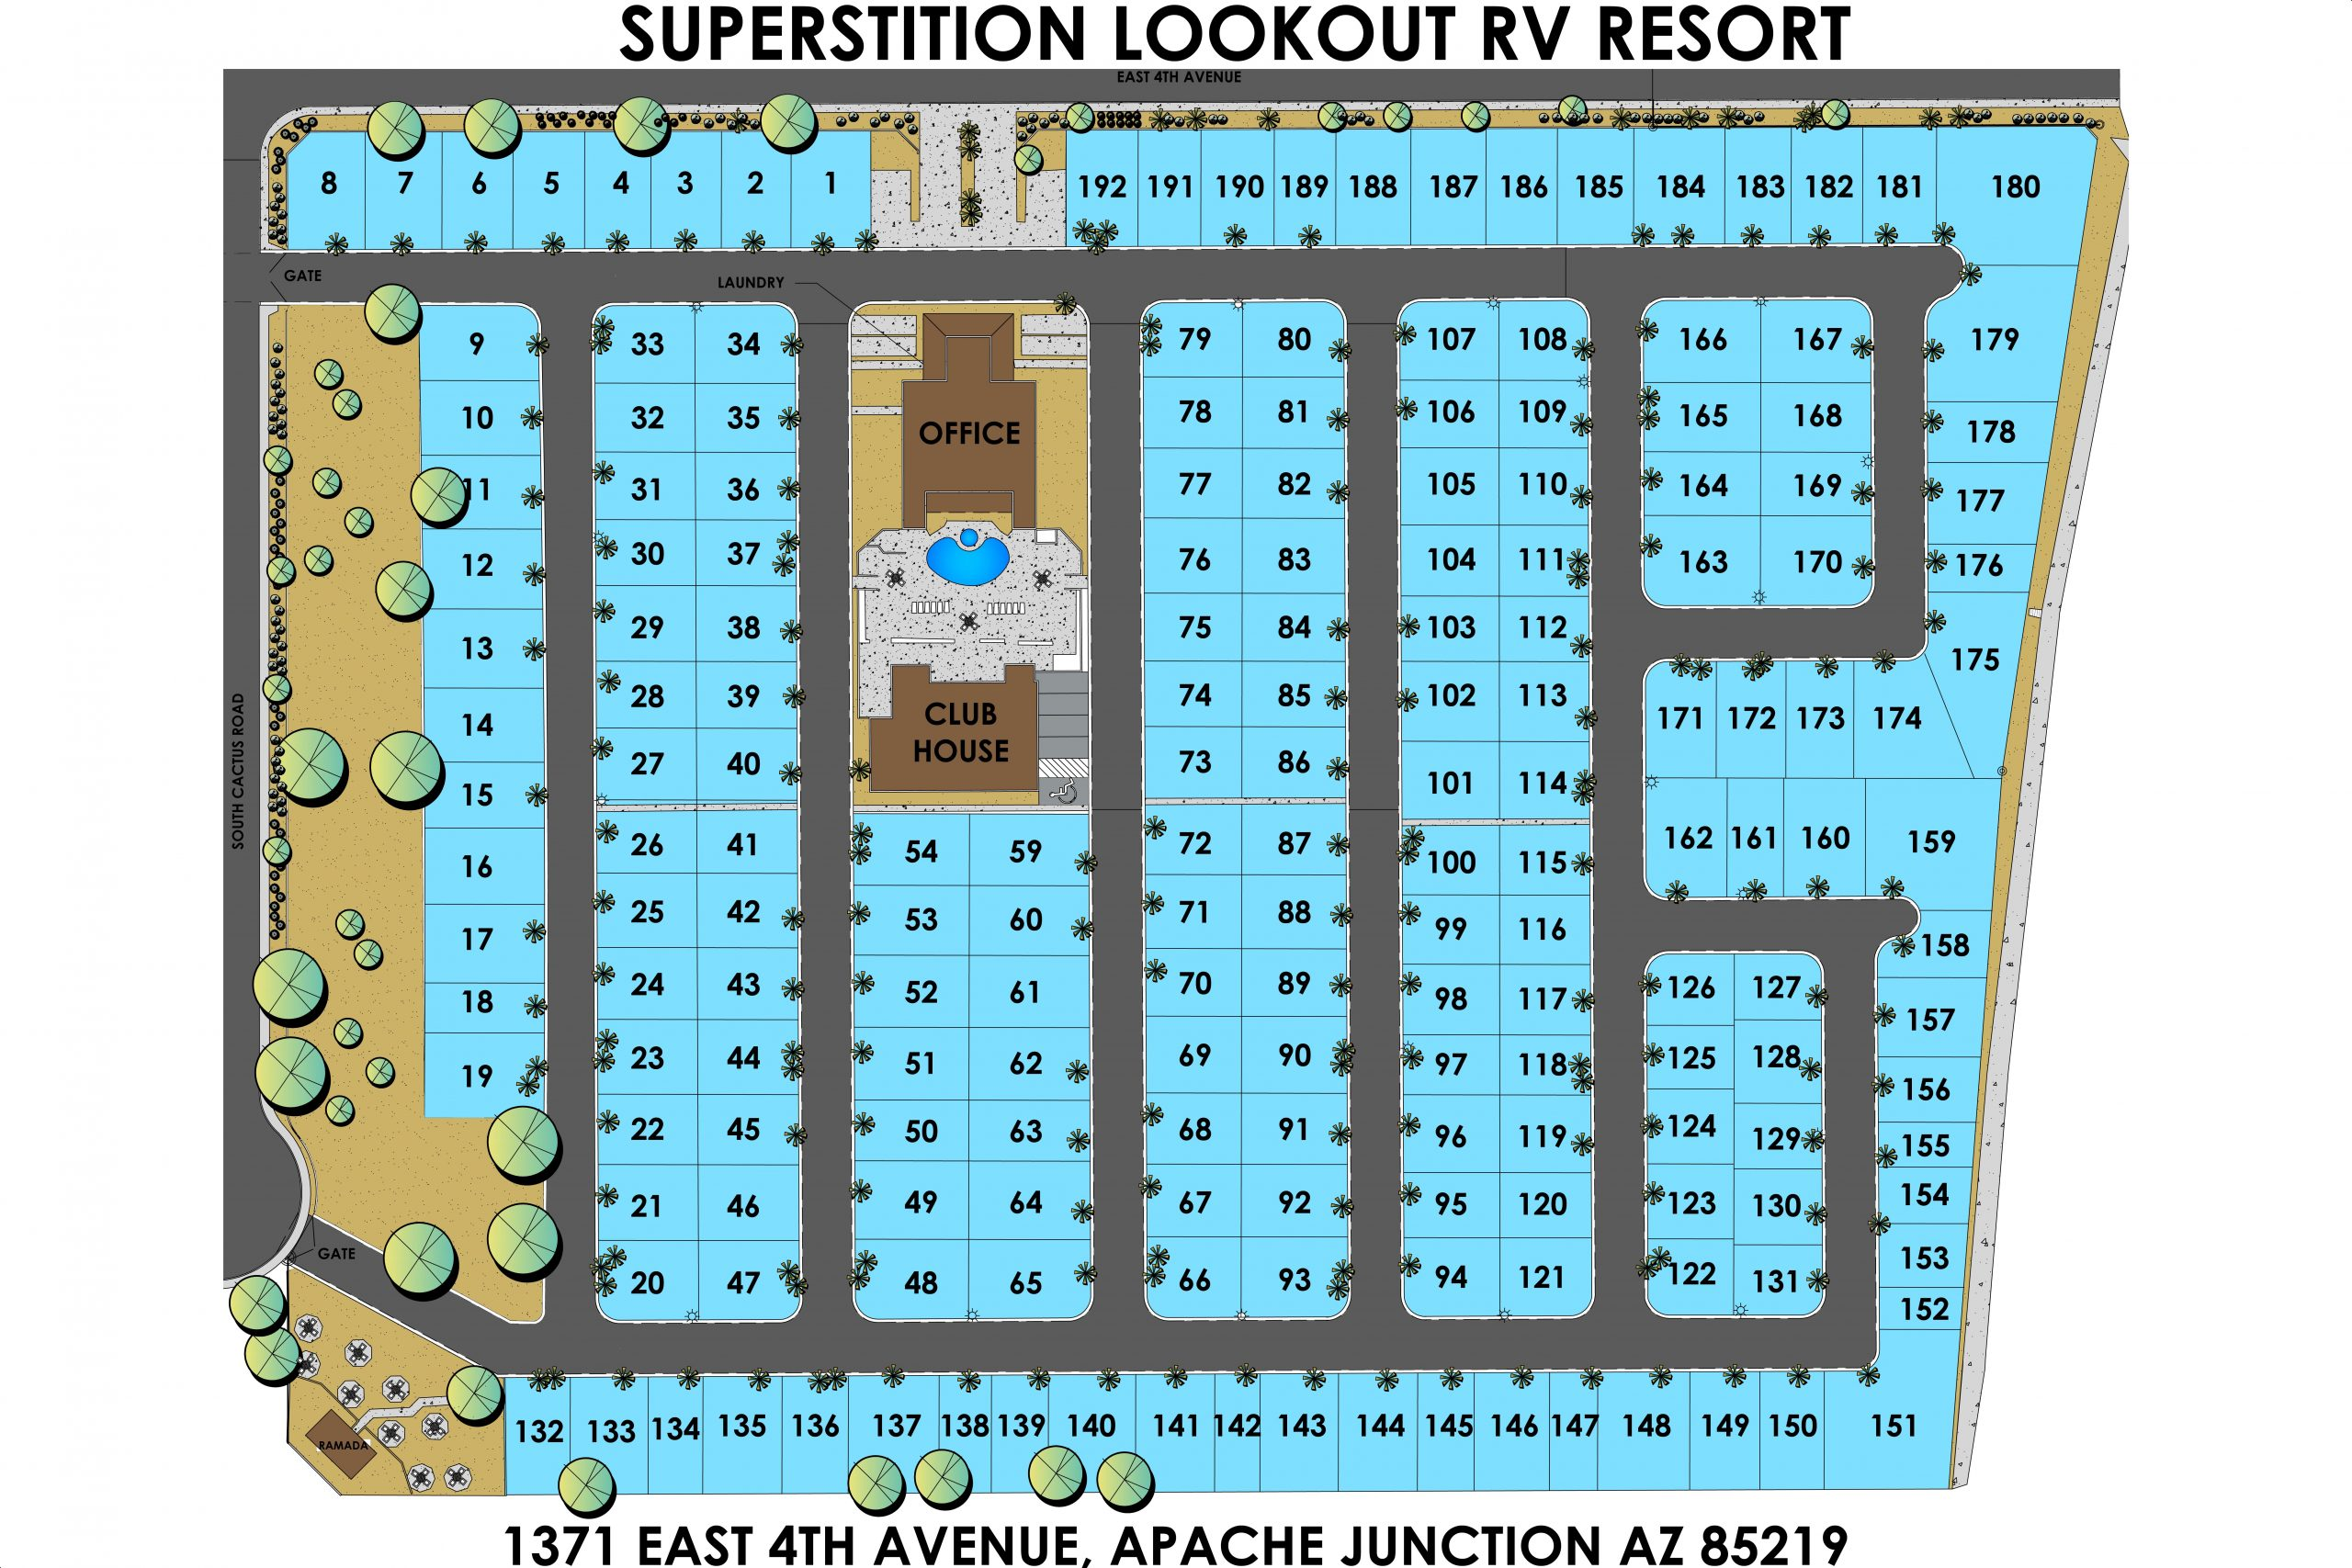 Superstition Lookout RV Resort Lot Map